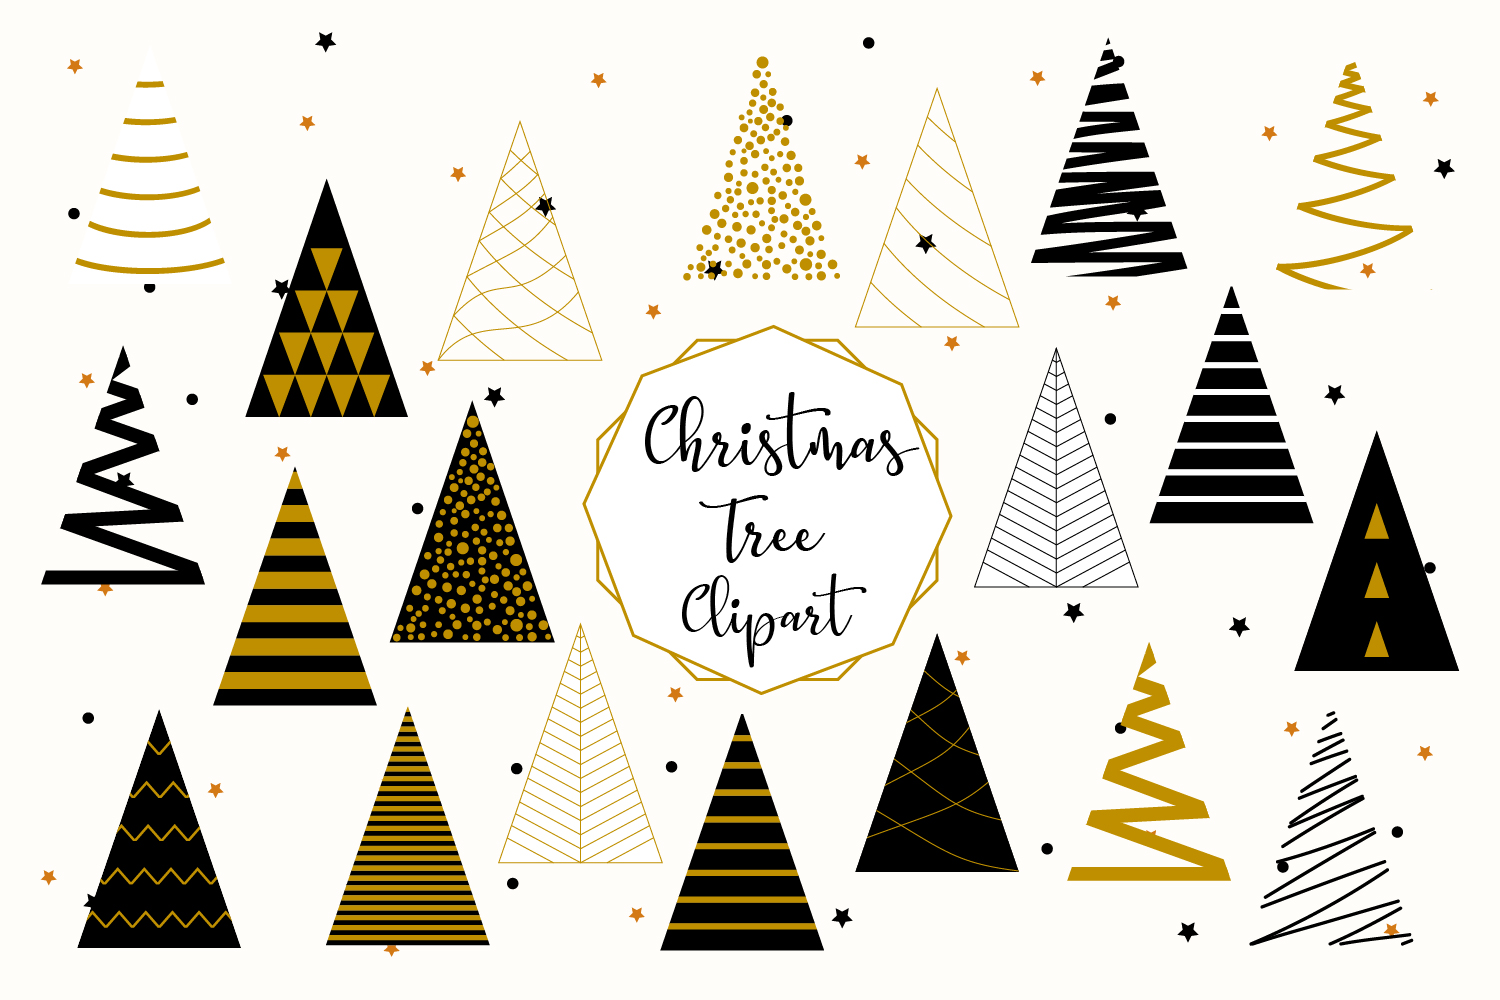 Download Free Christmas Tree Vector Graphic By Igraphic Studio Creative Fabrica for Cricut Explore, Silhouette and other cutting machines.